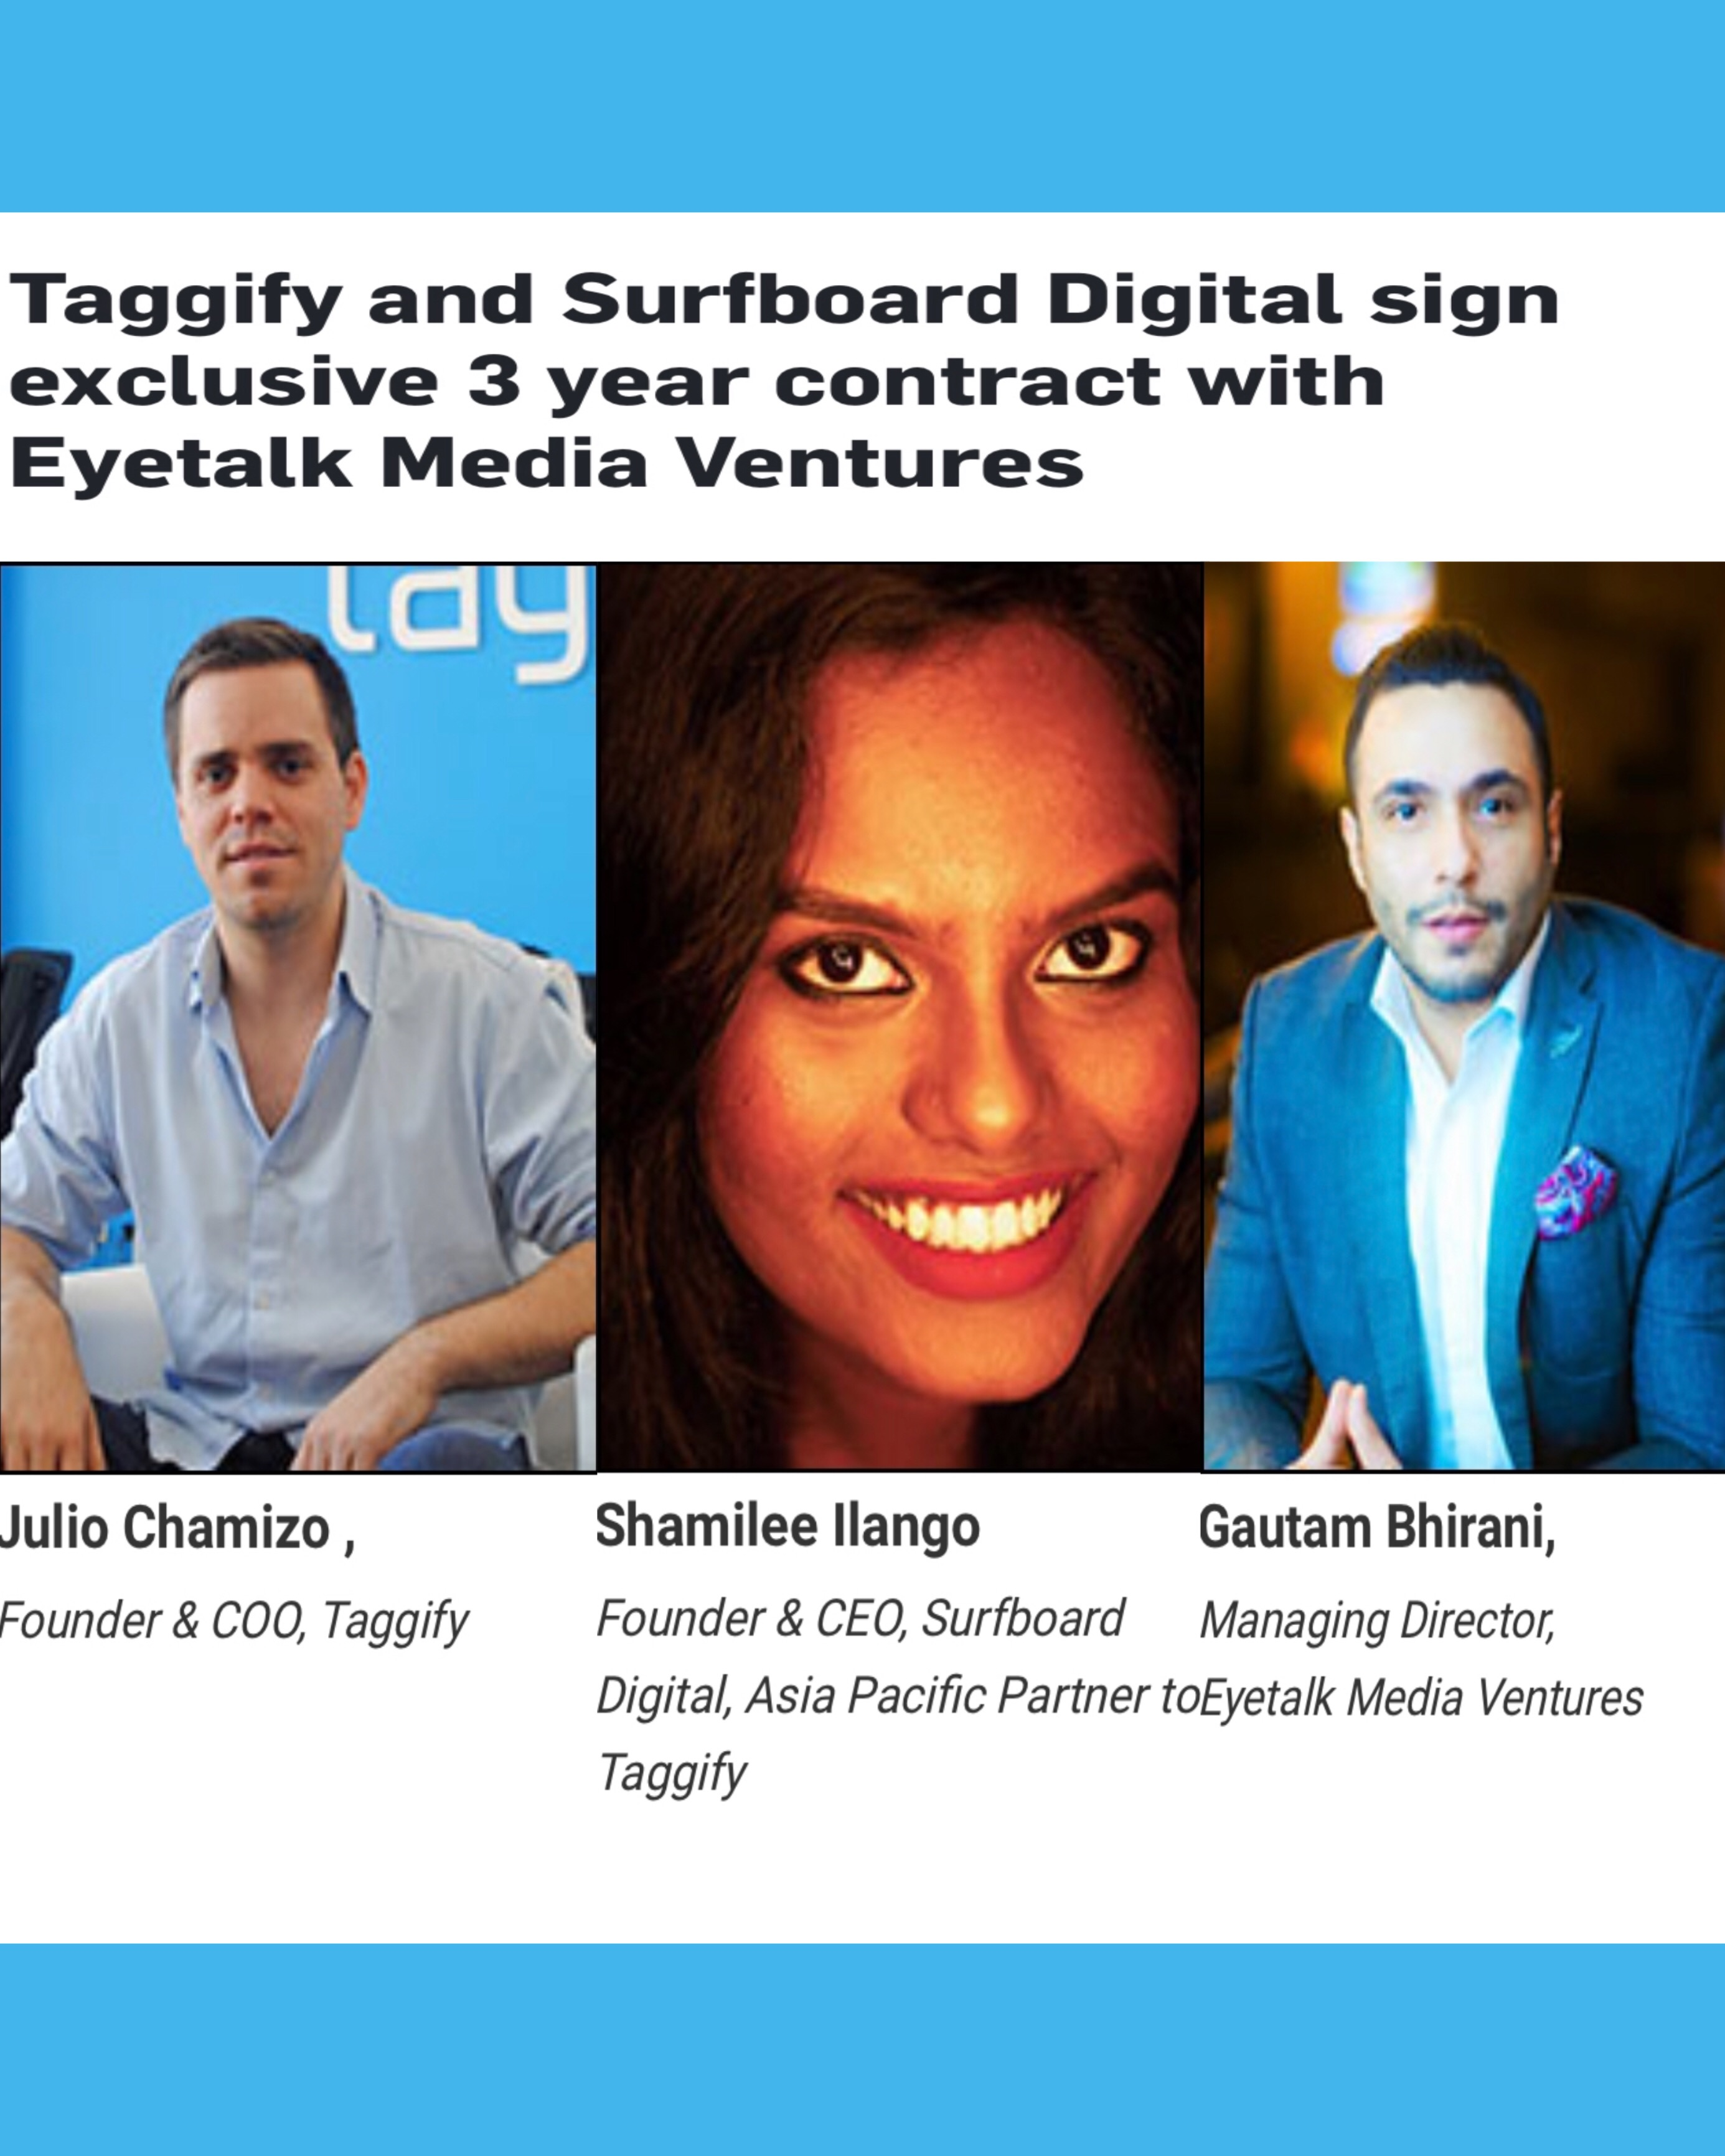 Taggify and Surfboard Digital sign exclusive 3 year contract with Eyetalk Media Ventures